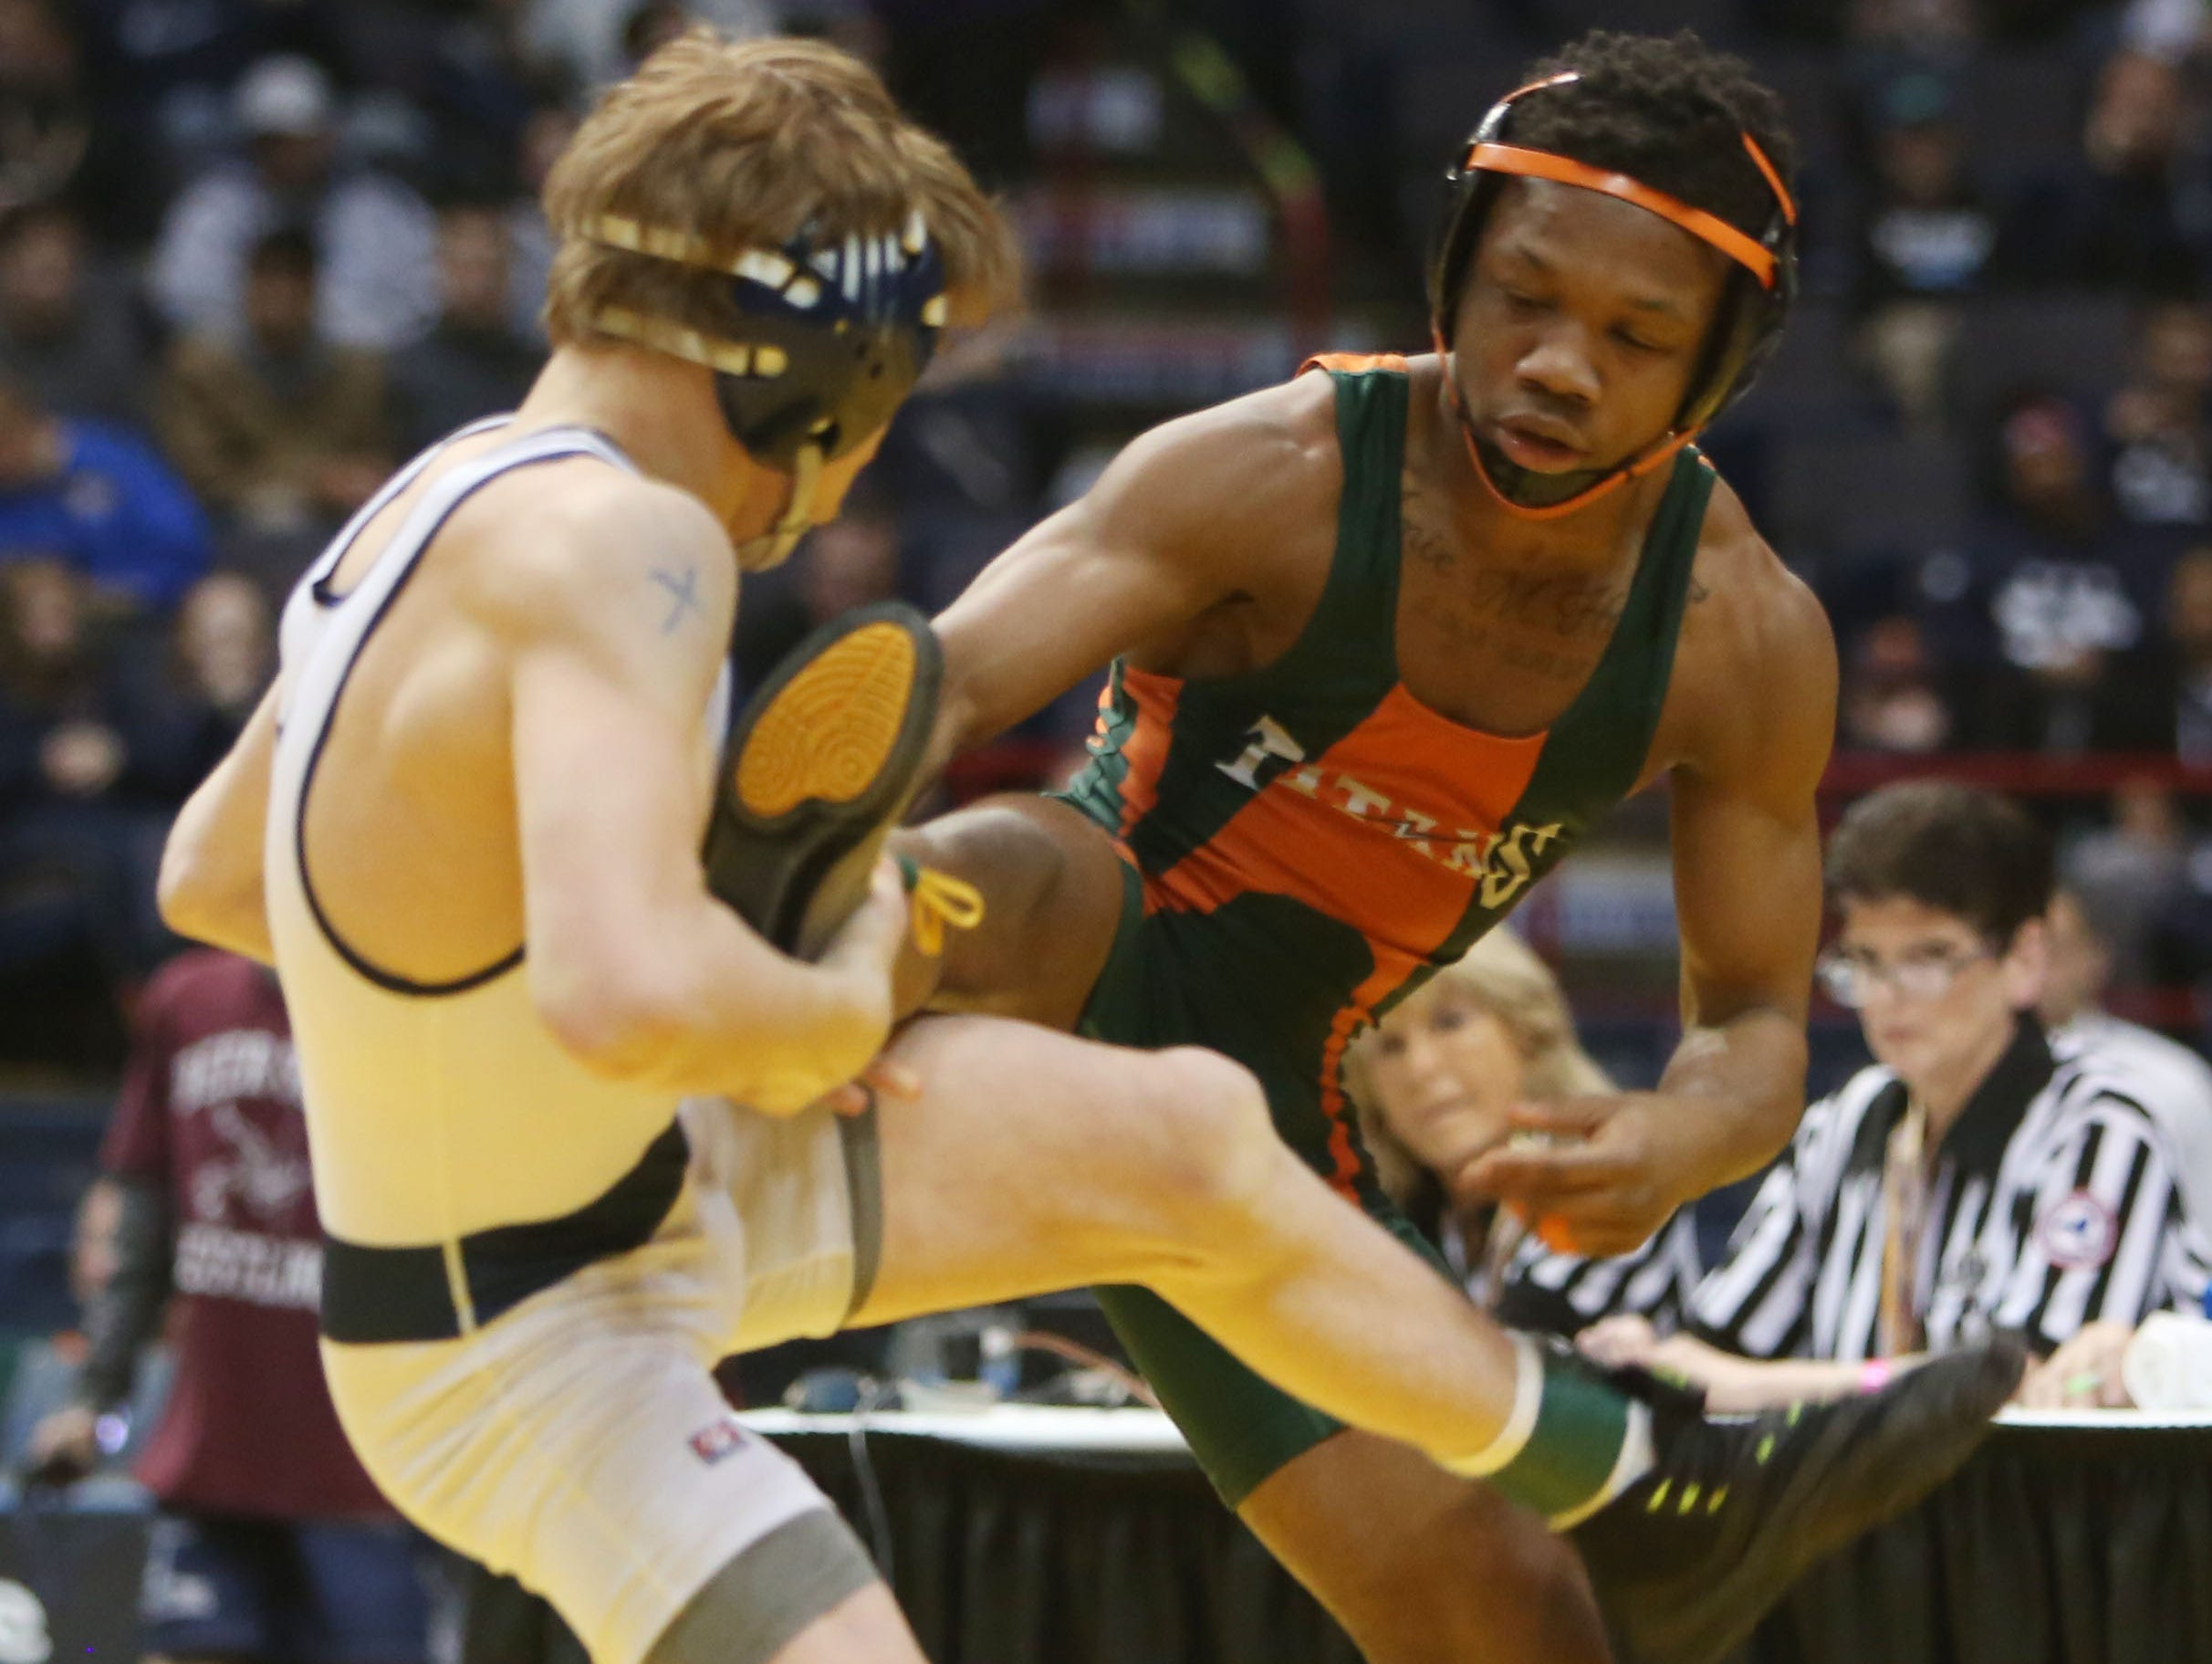 East Ramapo's Trey Wardlaw and Eastport South Manor's Adam Busiello wrestle in the 106-pound weight class in the finals of the New York State wrestling championship at the Times Union Center in Albany Feb. 27, 2016. Busiello won the match.